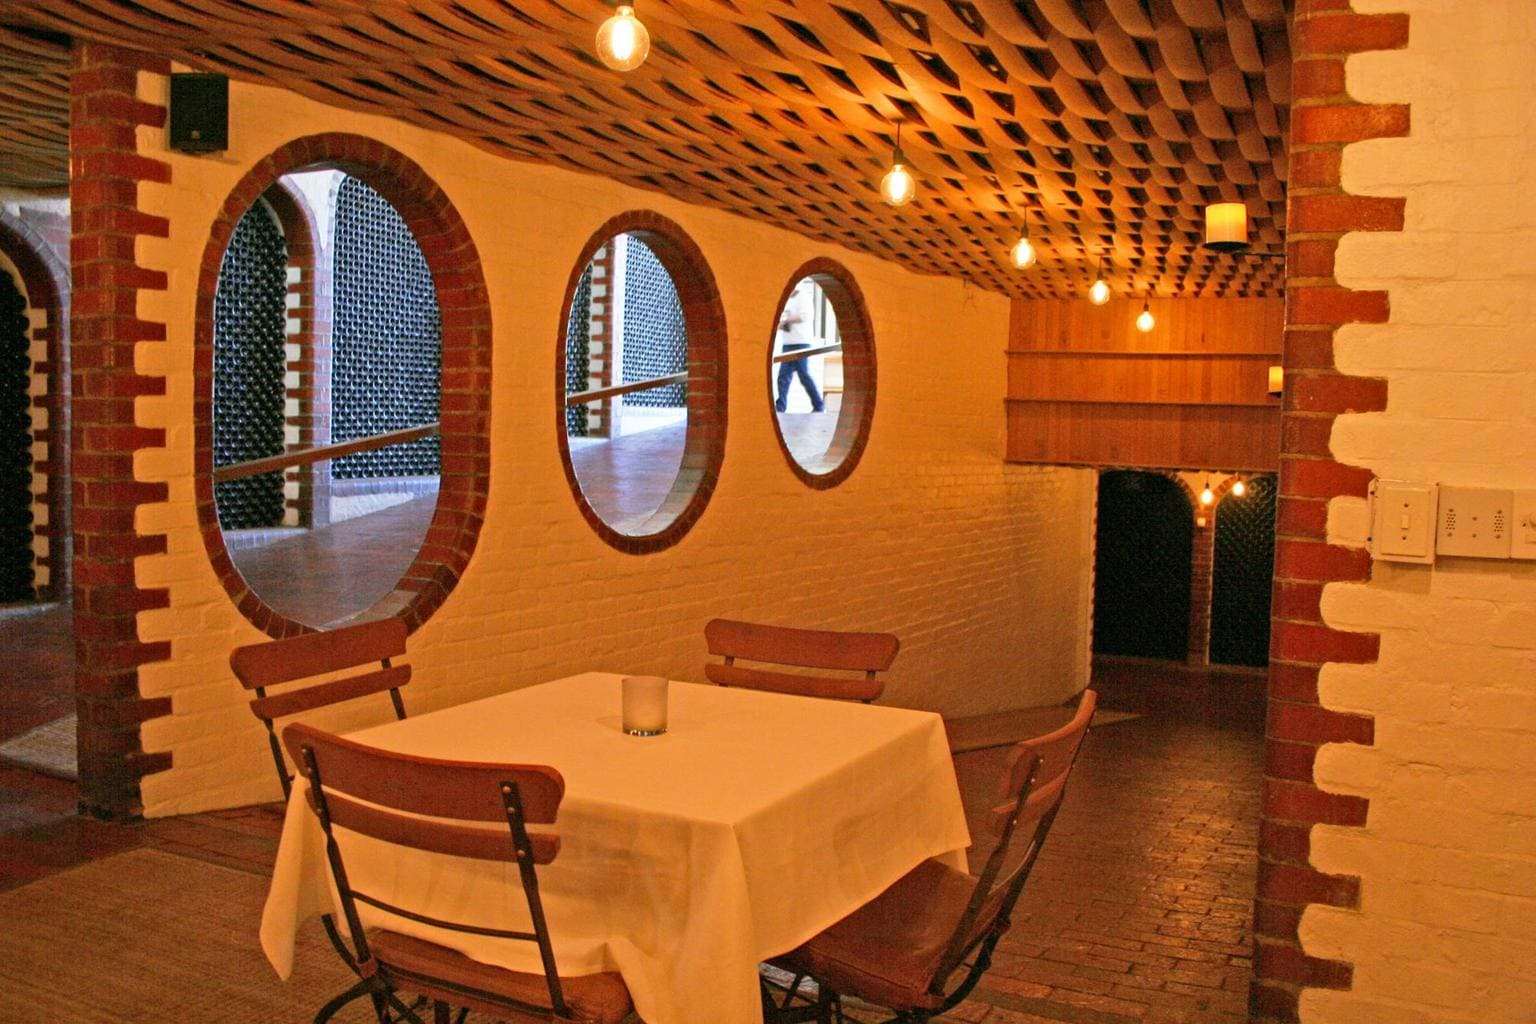 Cellar seating at Rust en Vrede